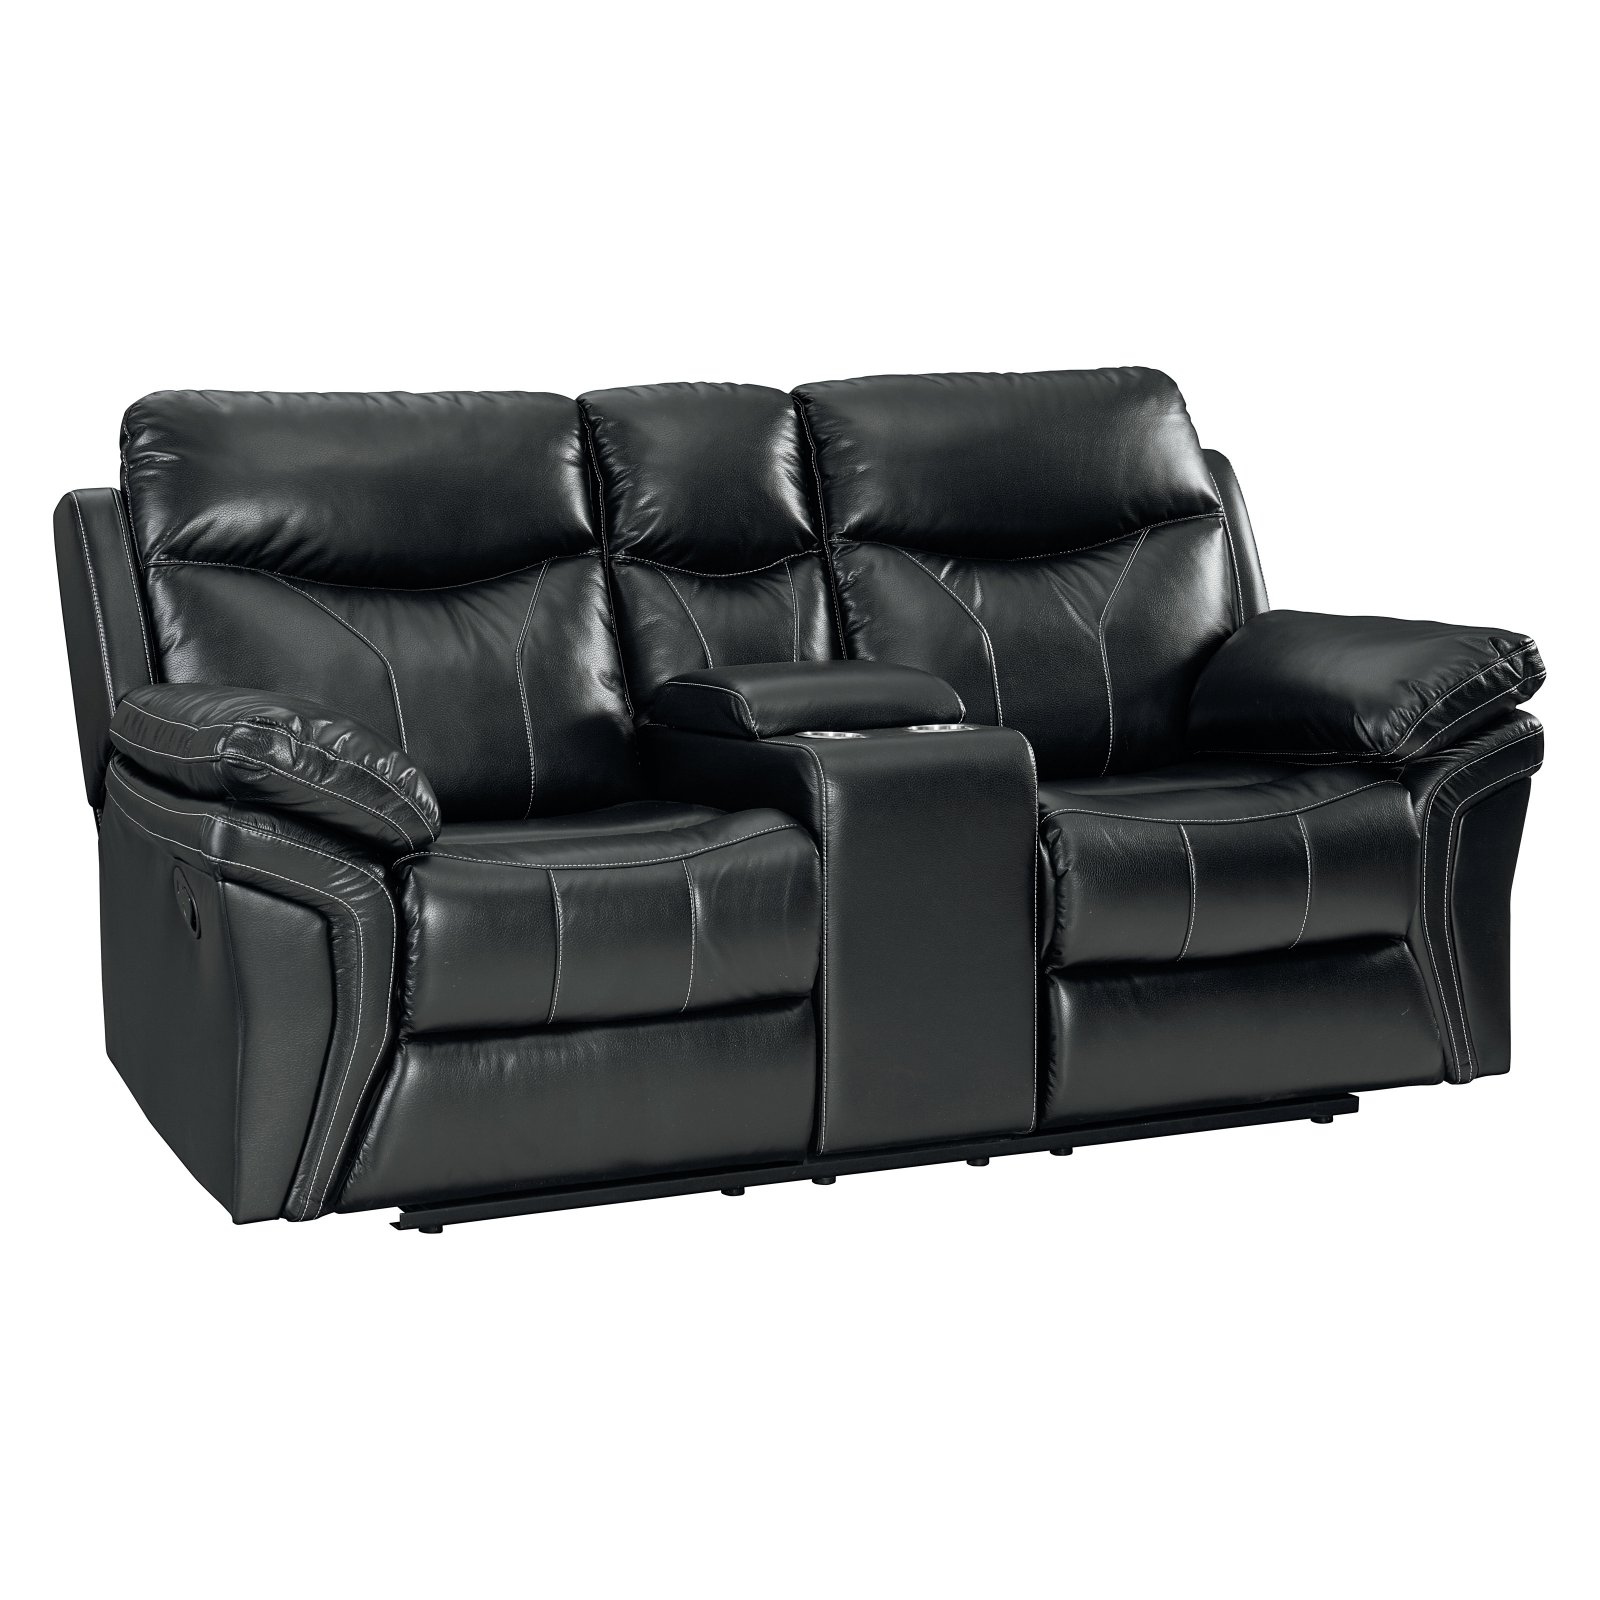 Standard Manufacturing Co. inc. San Marco Manual Motion Loveseat